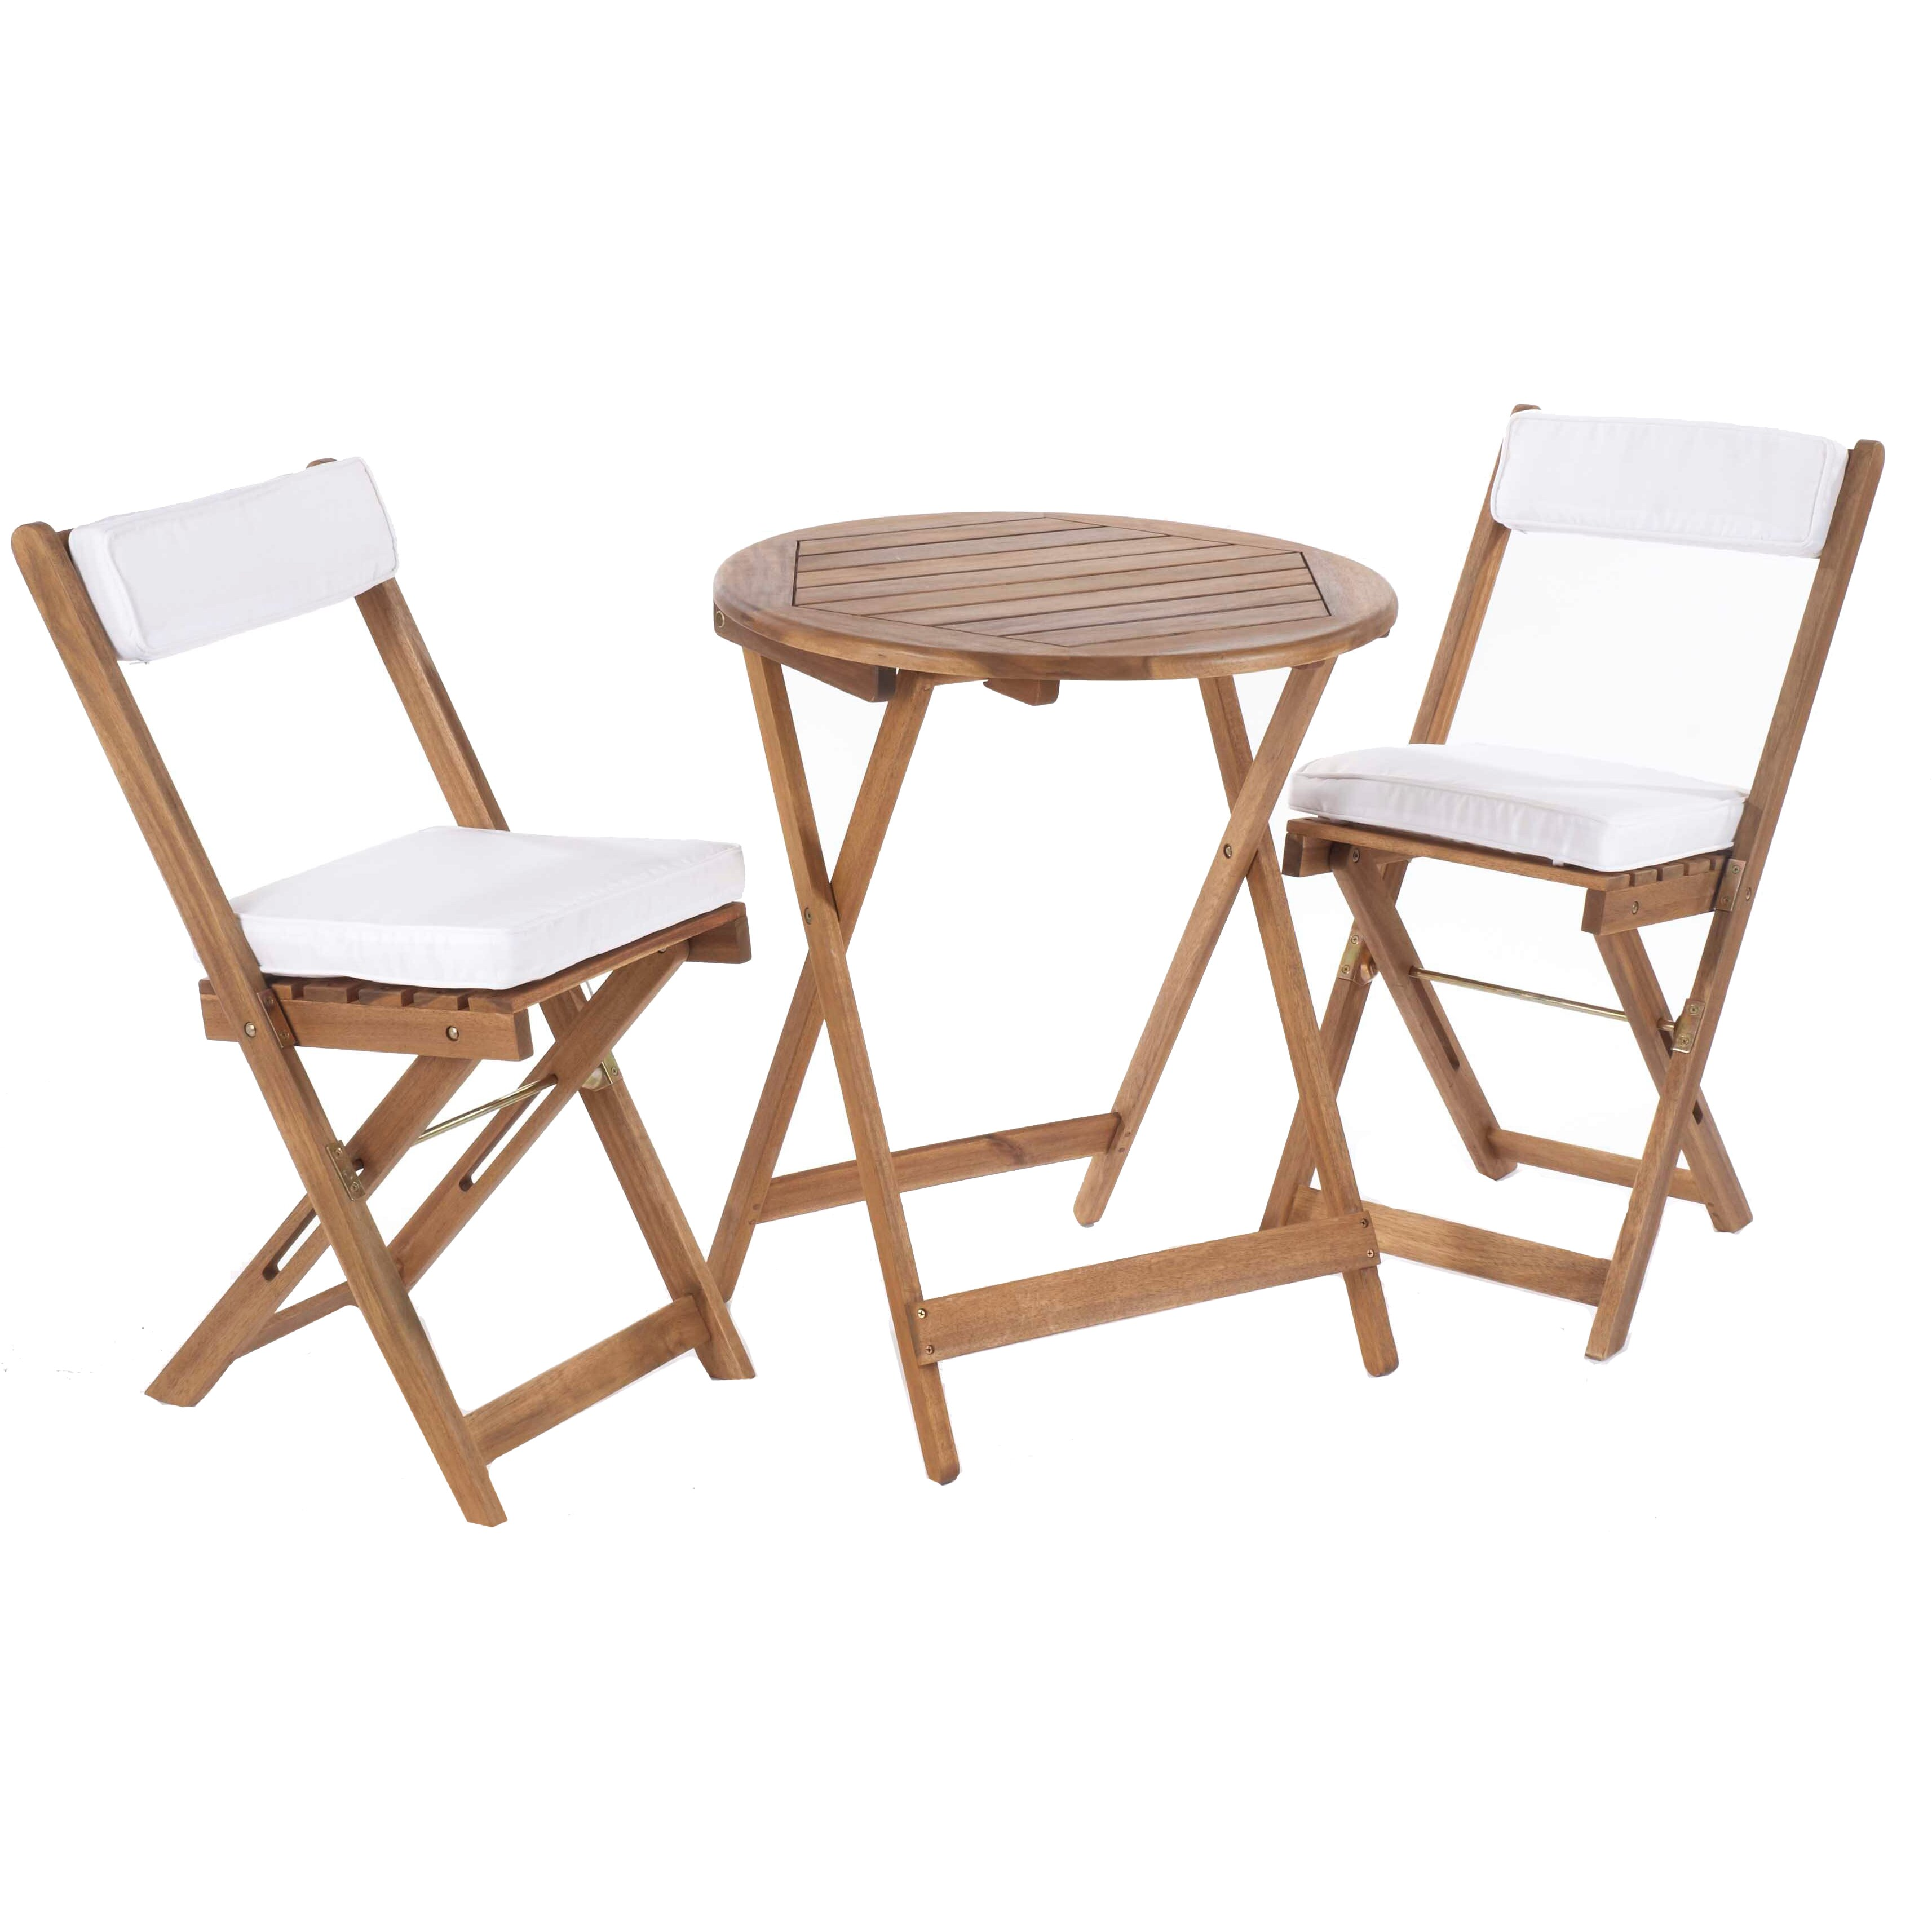 garden bistro set wooden folding chairs cushions table